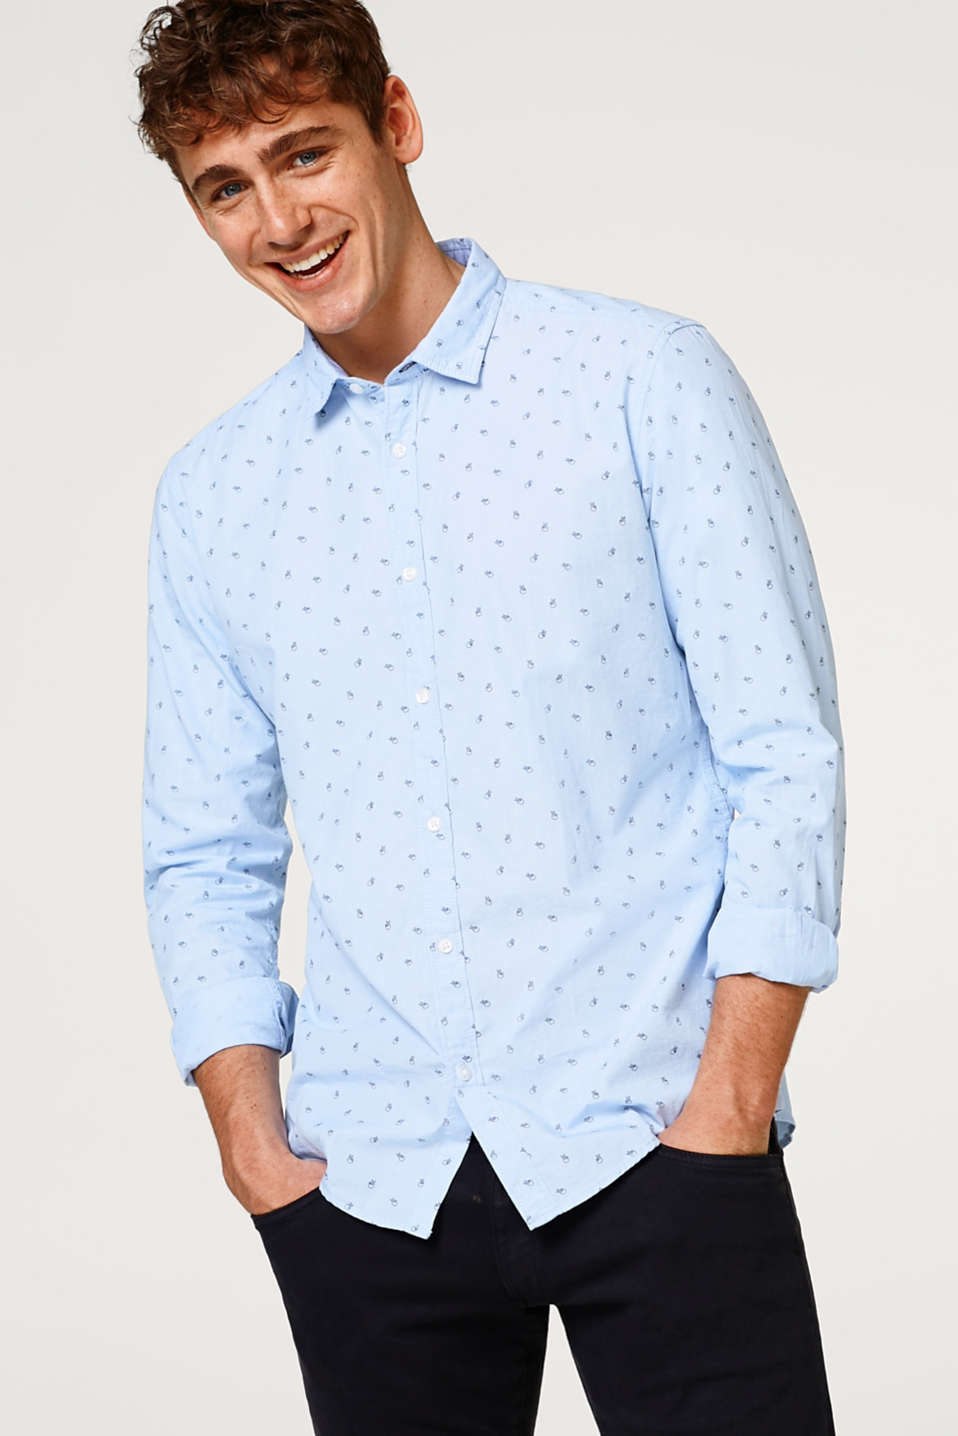 Esprit - Shirt with a symbol print in 100% cotton